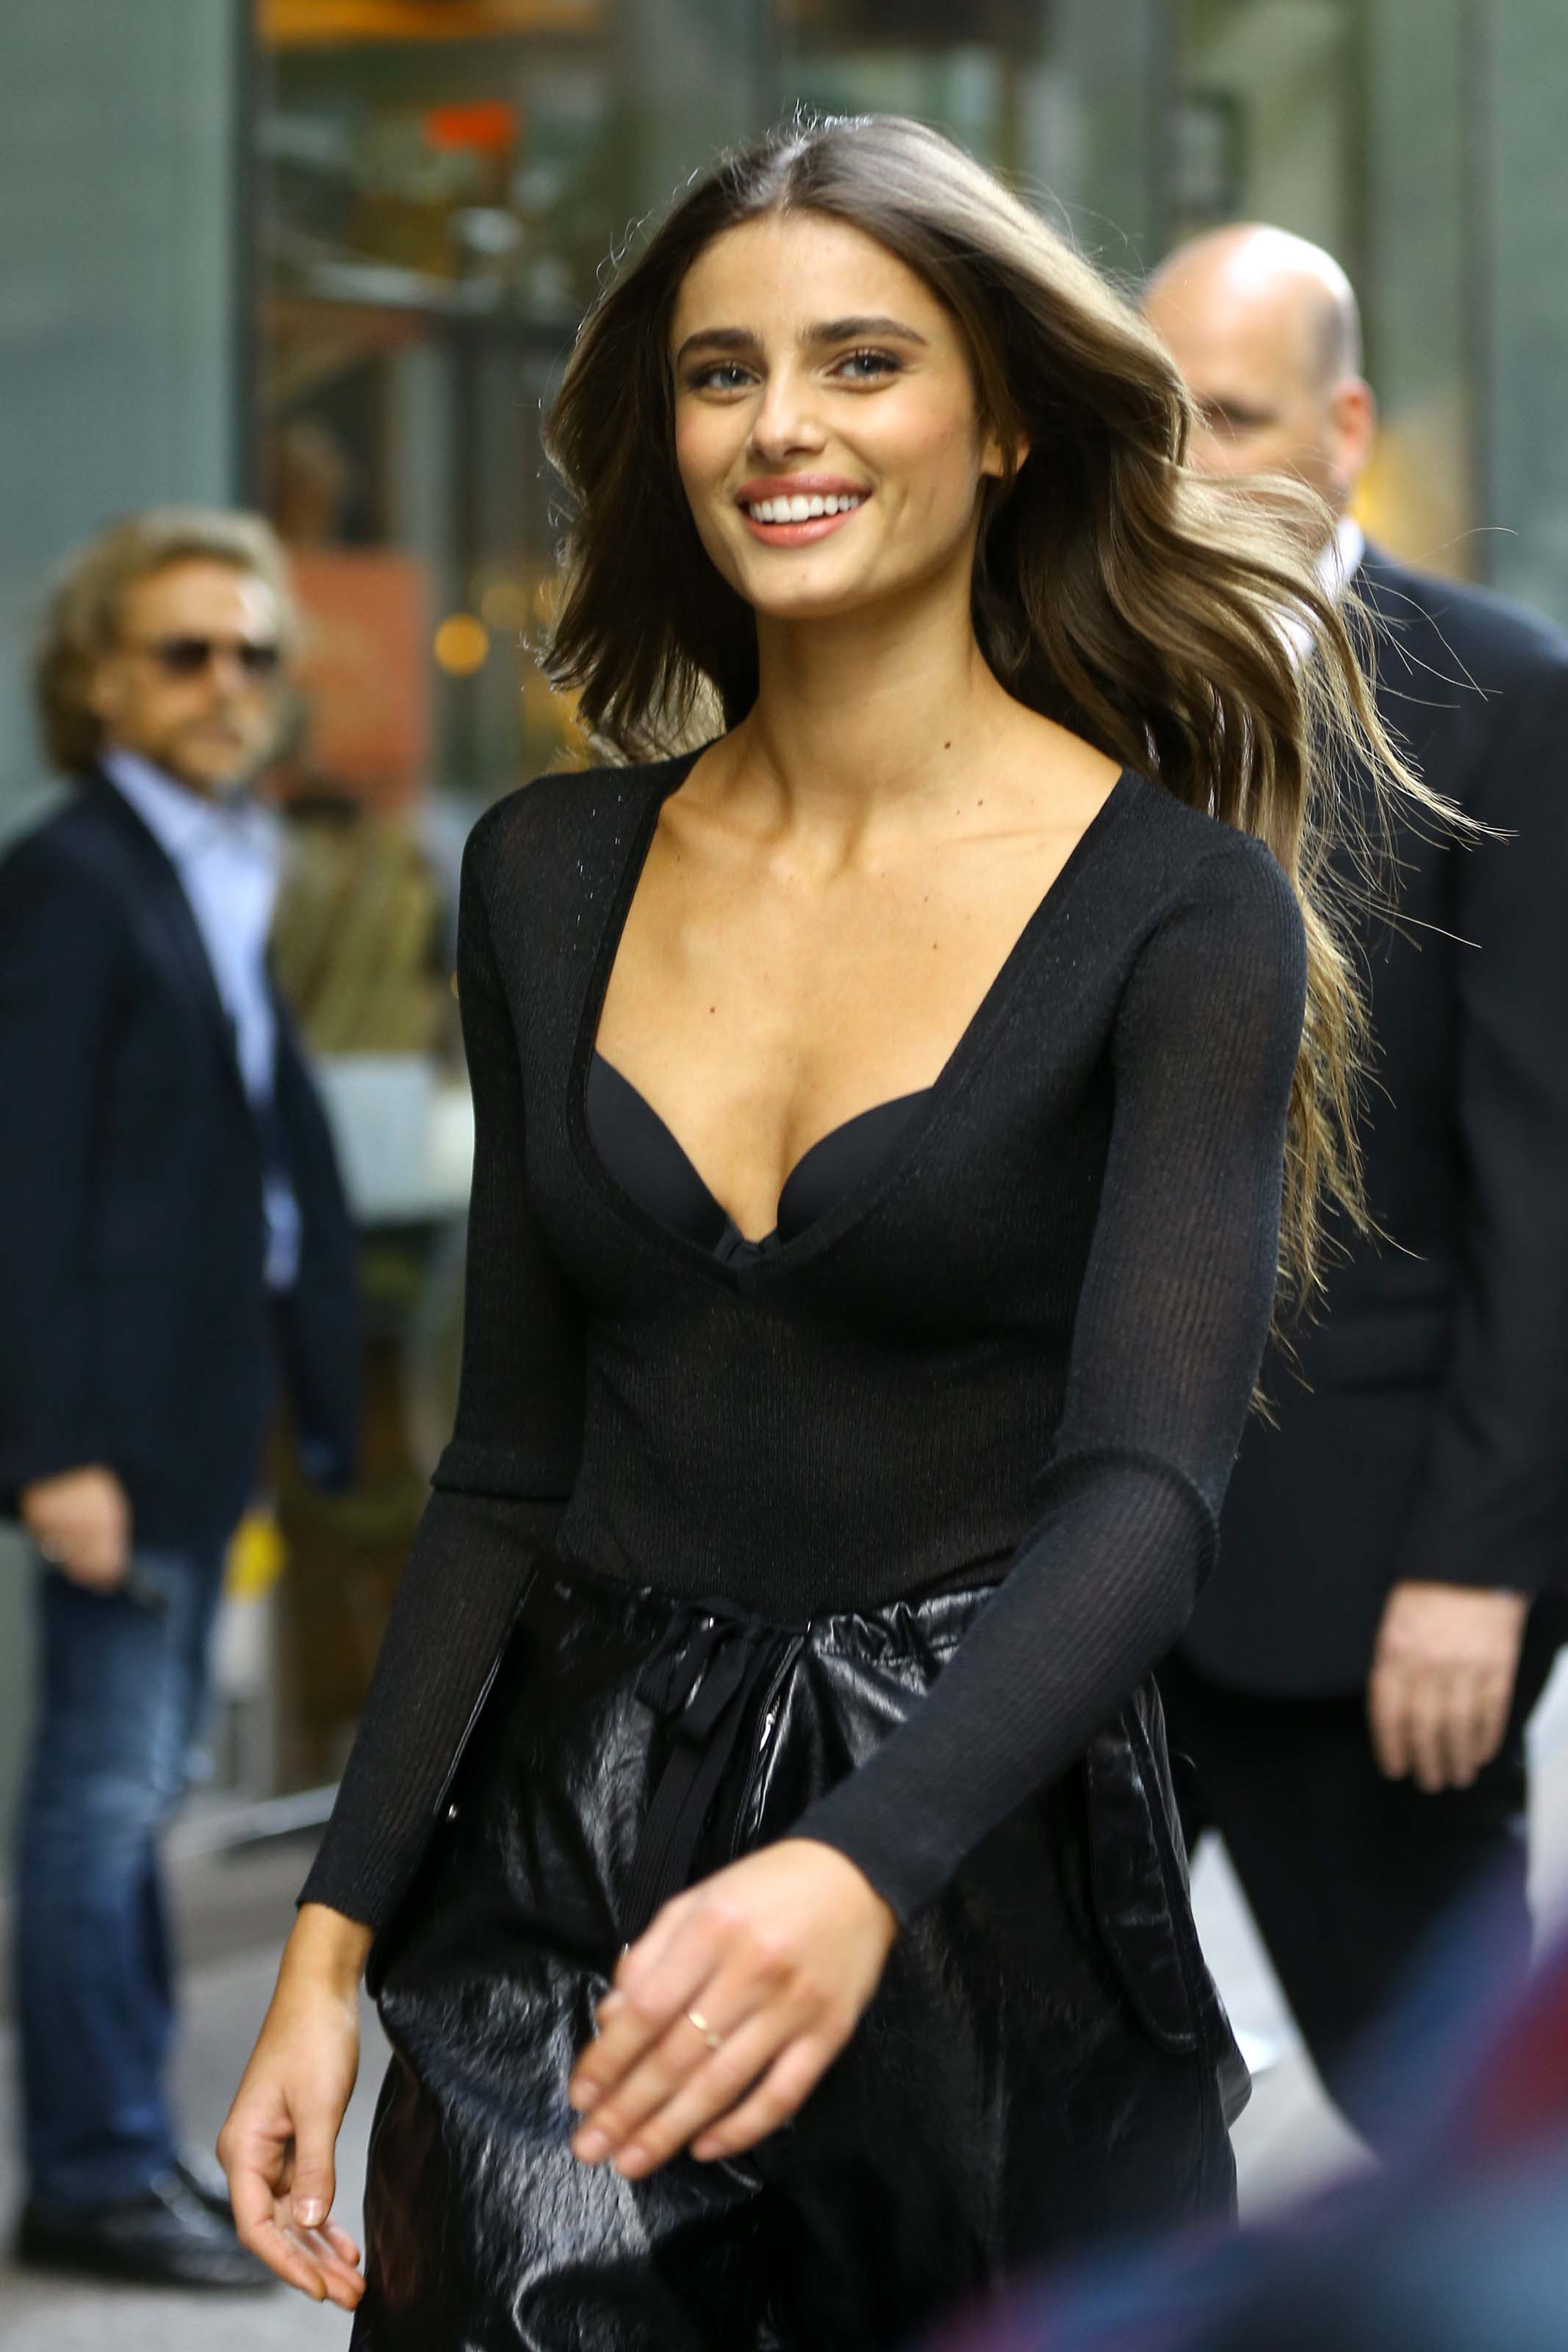 Taylor Hill films a small promo event in NYC showcasing her Angel Wings